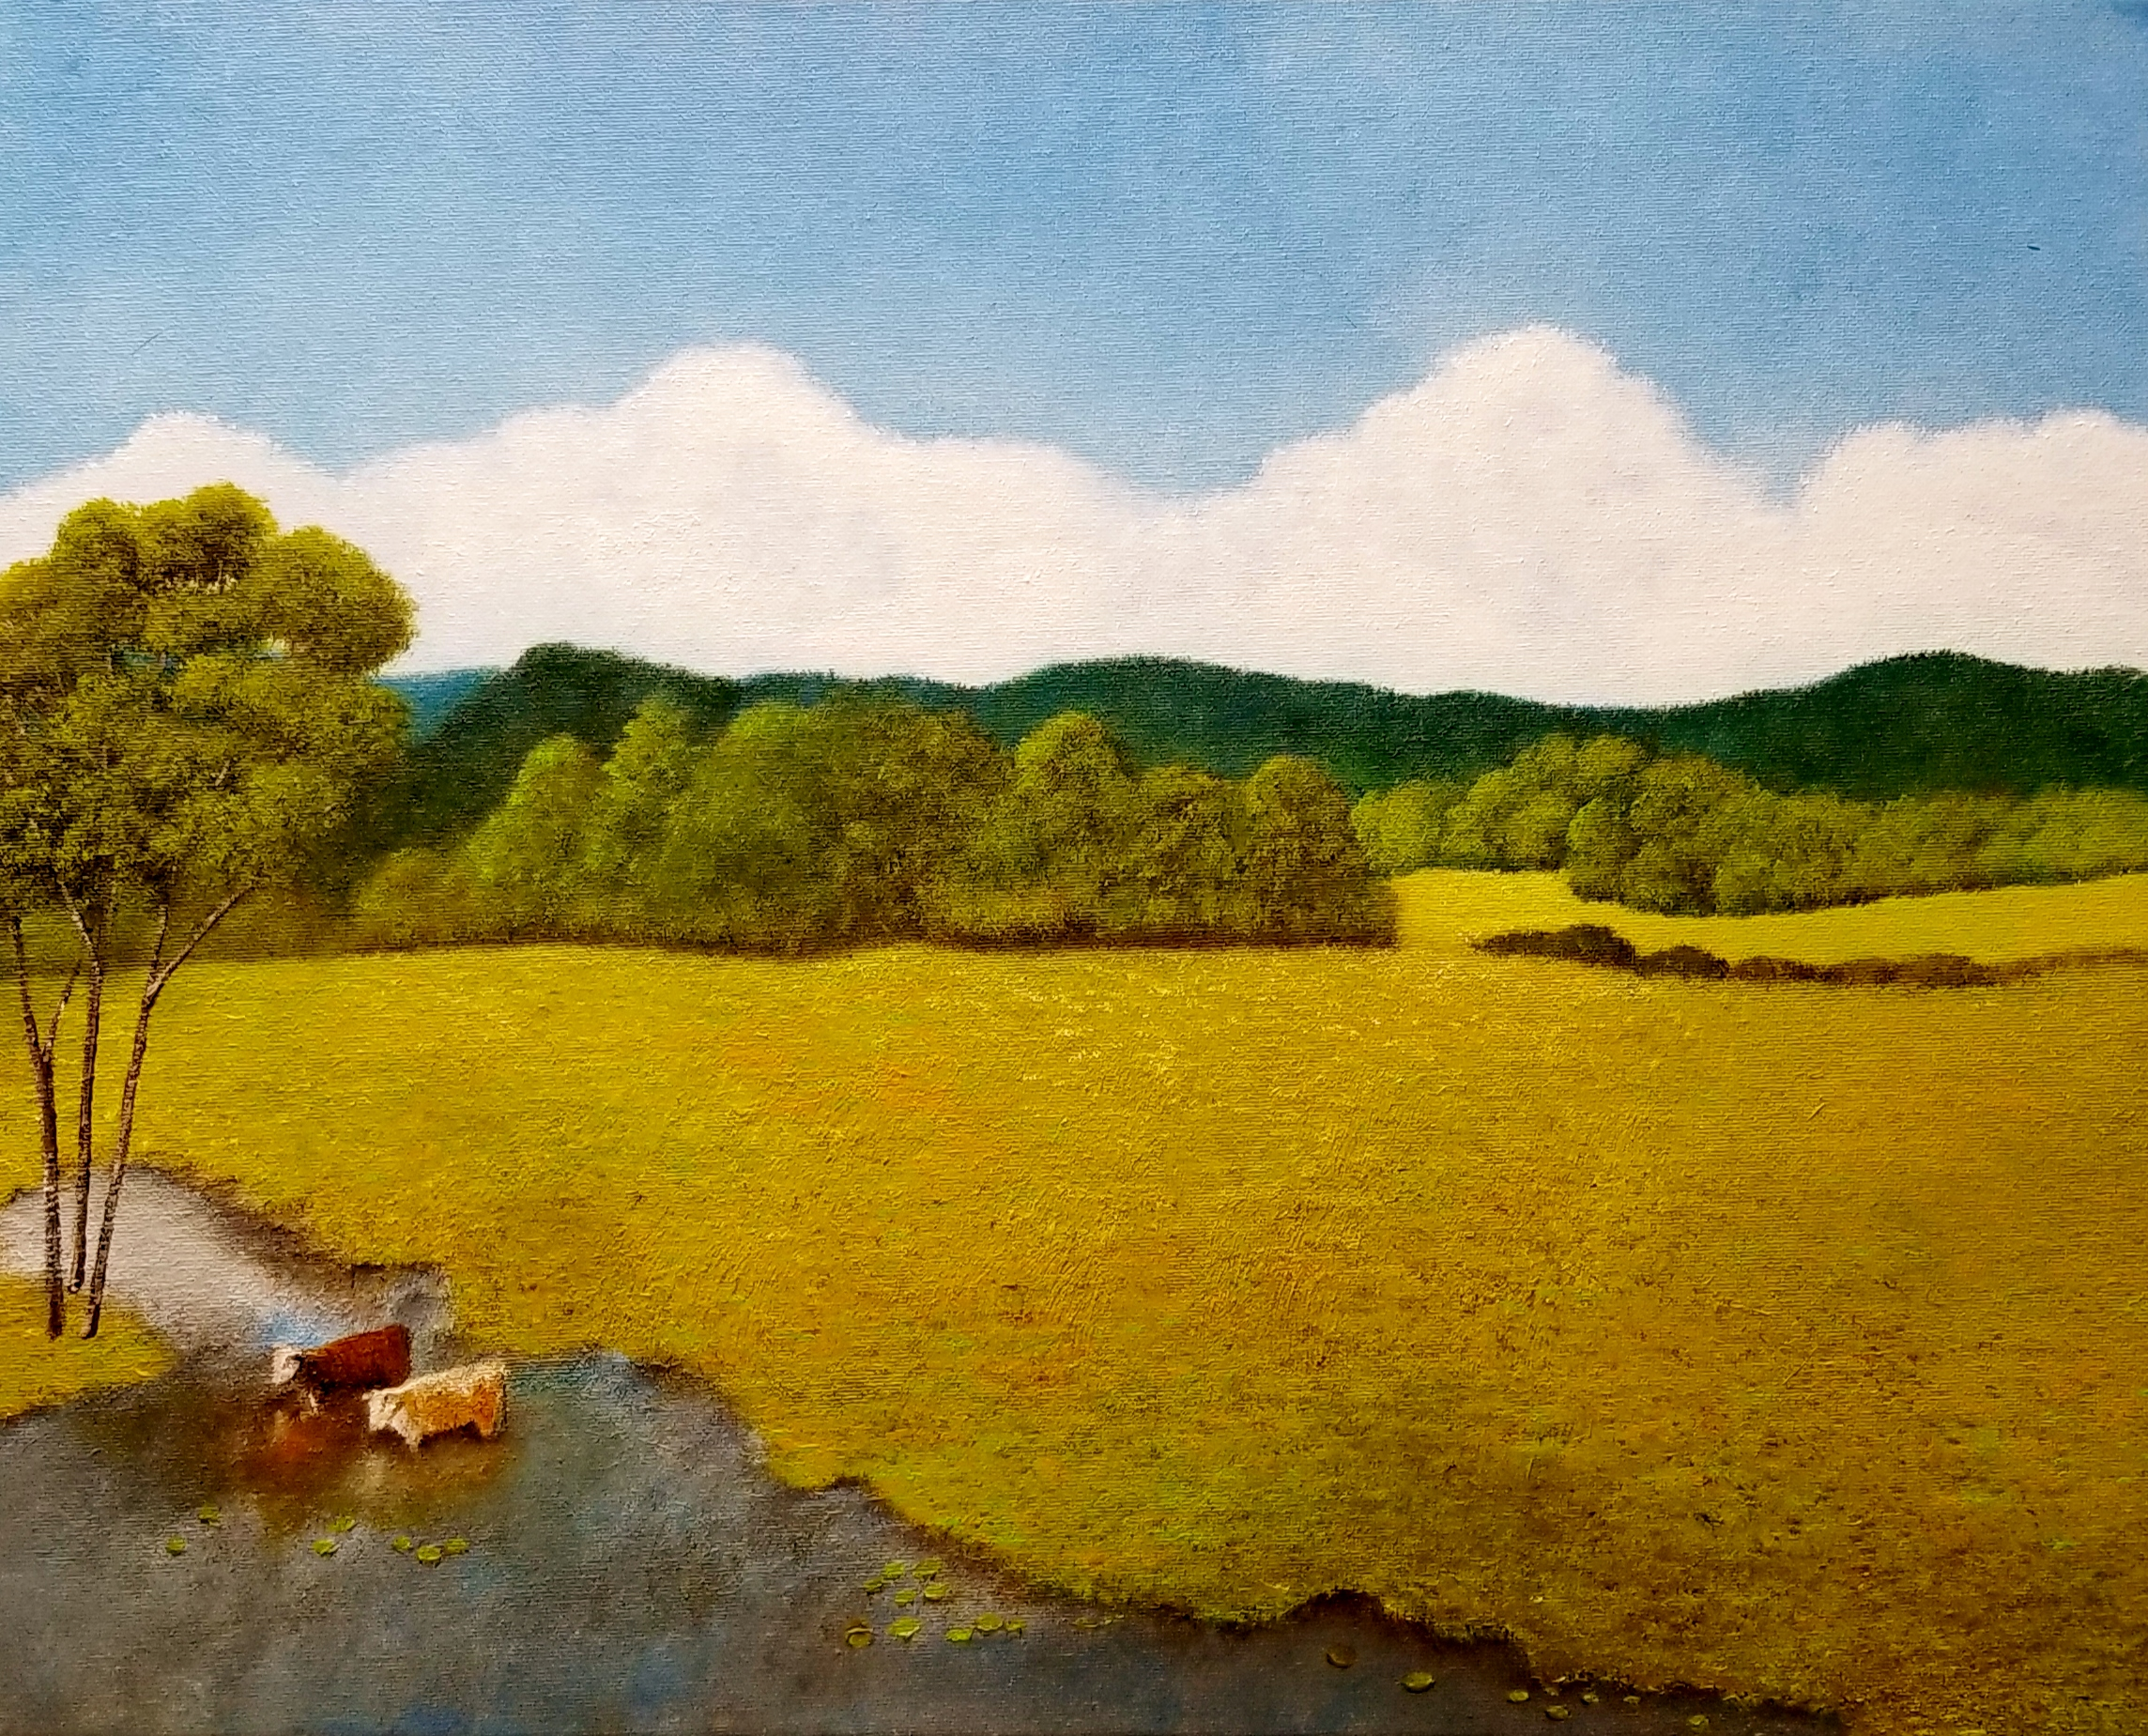 Lackey_Summer Days_Acrylic 16 X 20_7.5.19.jpg